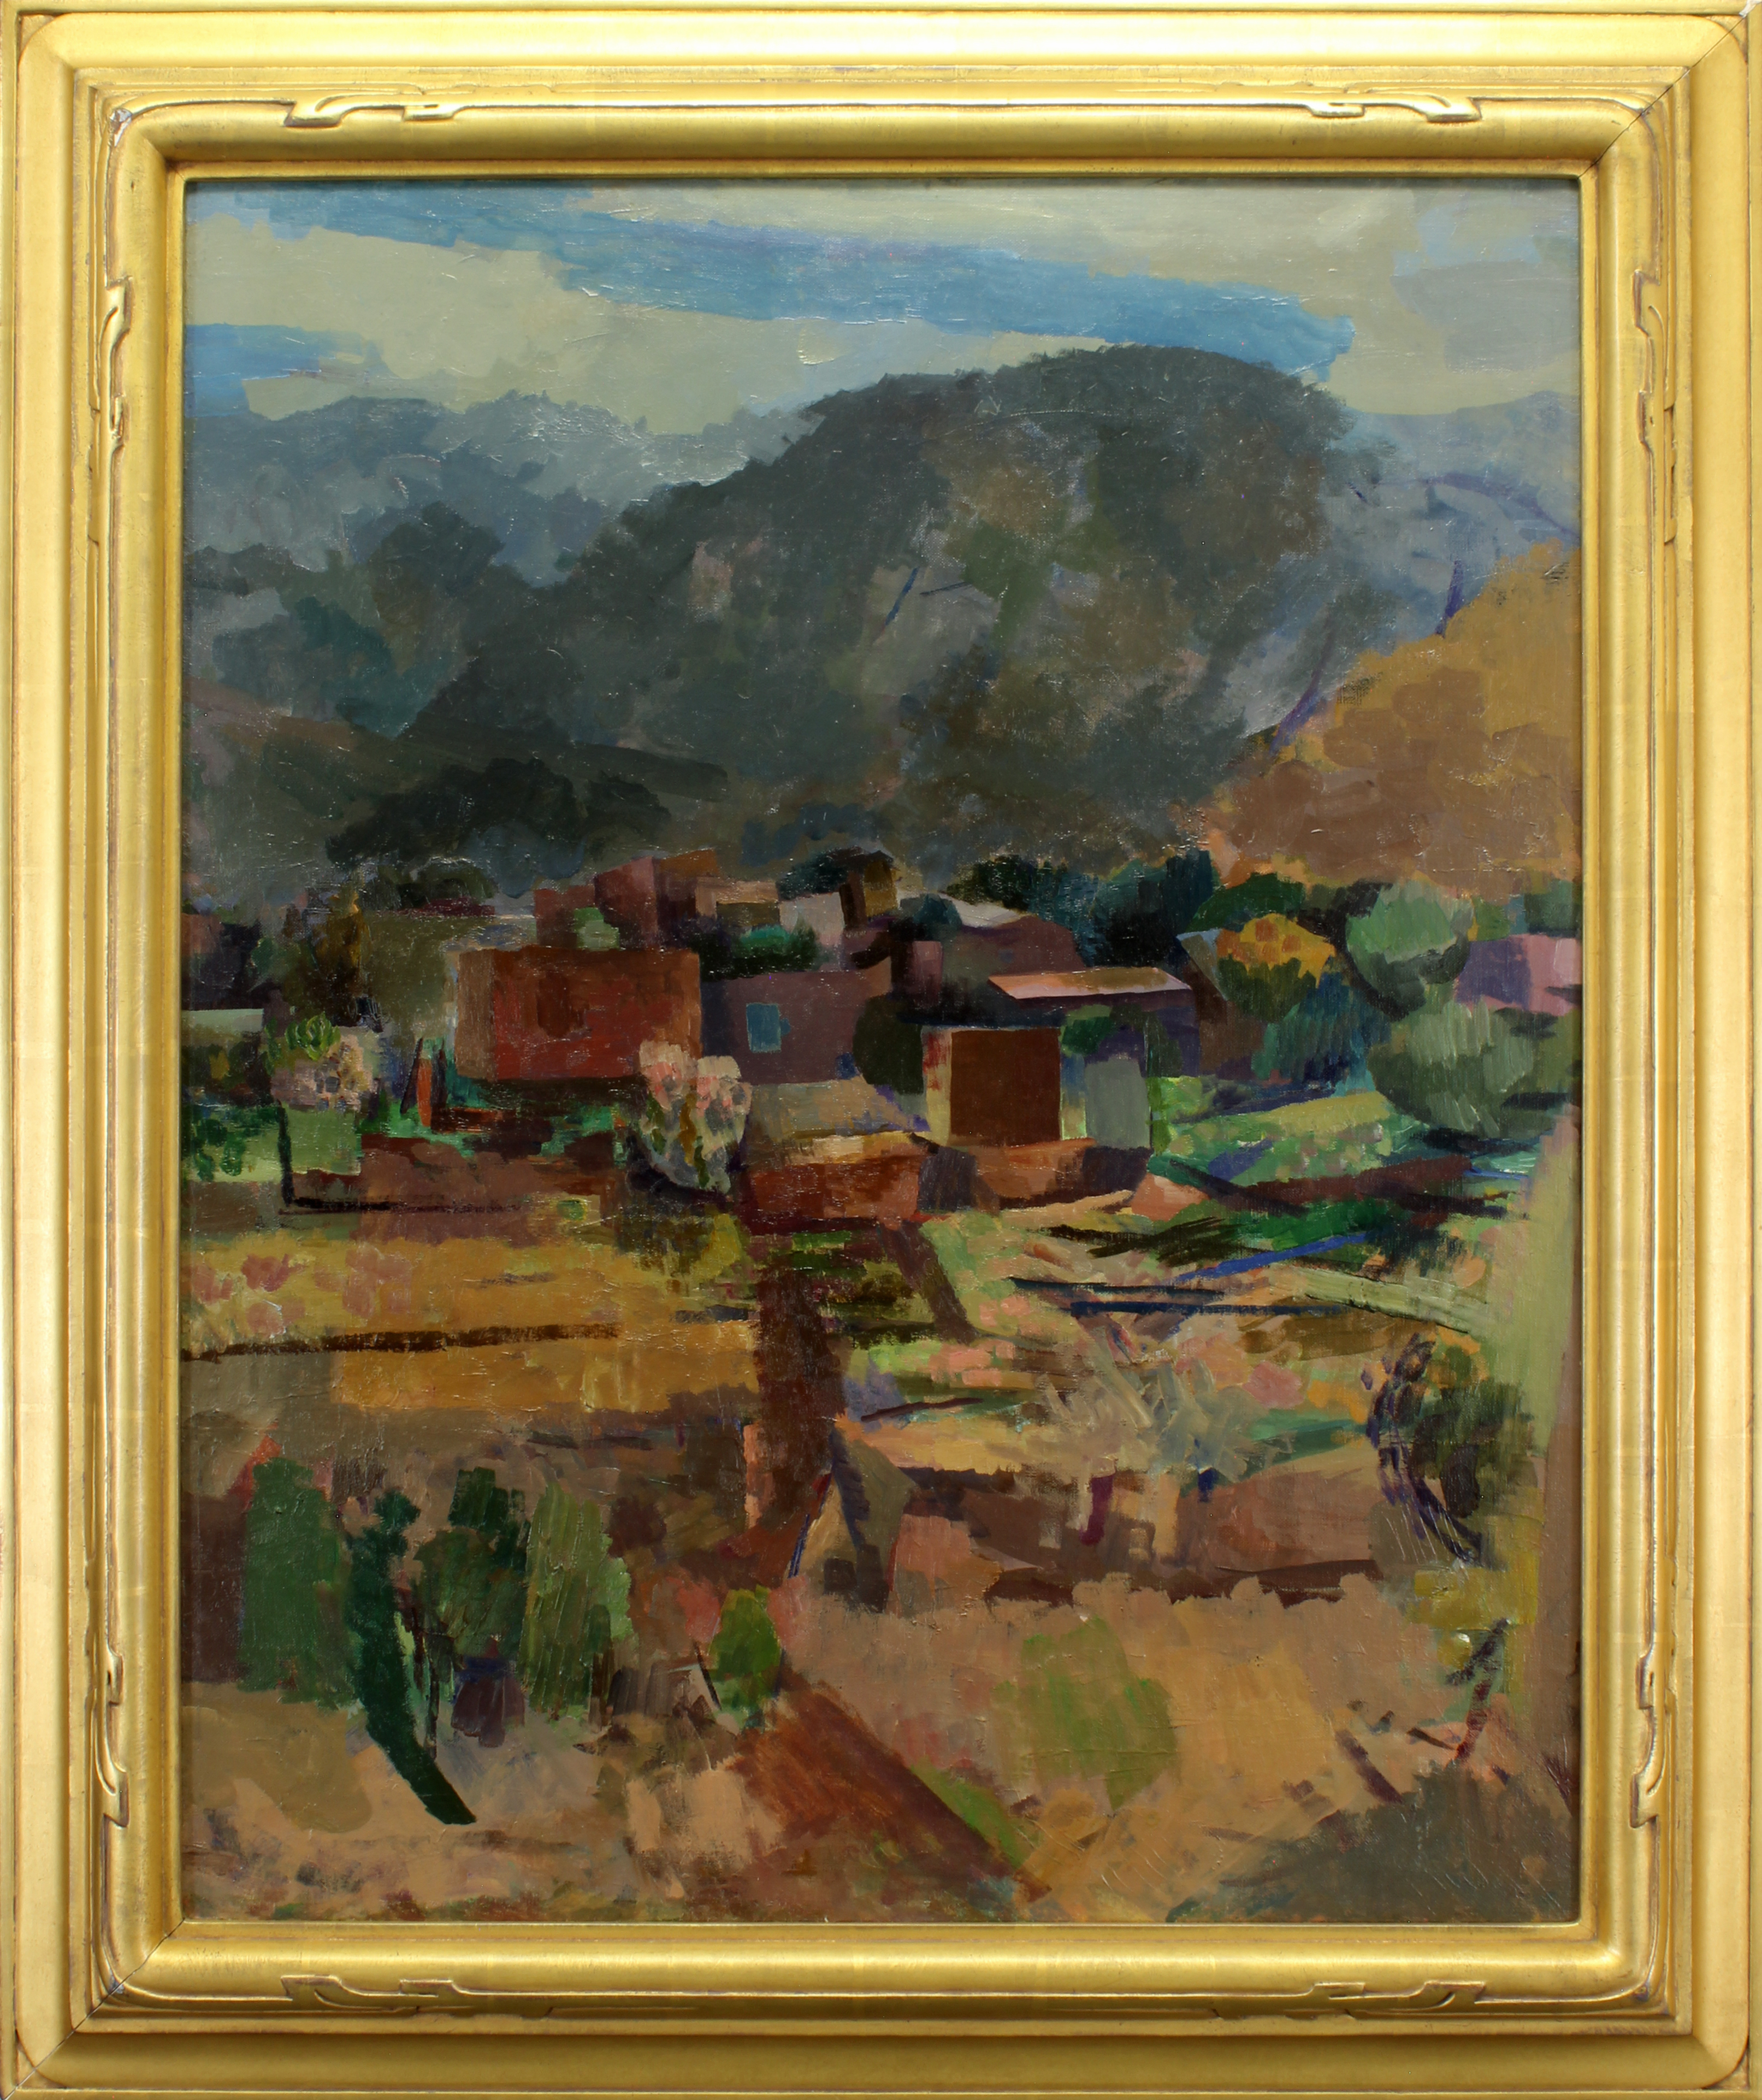 View of Ranchos and Leg Study (double-sided work), 1927